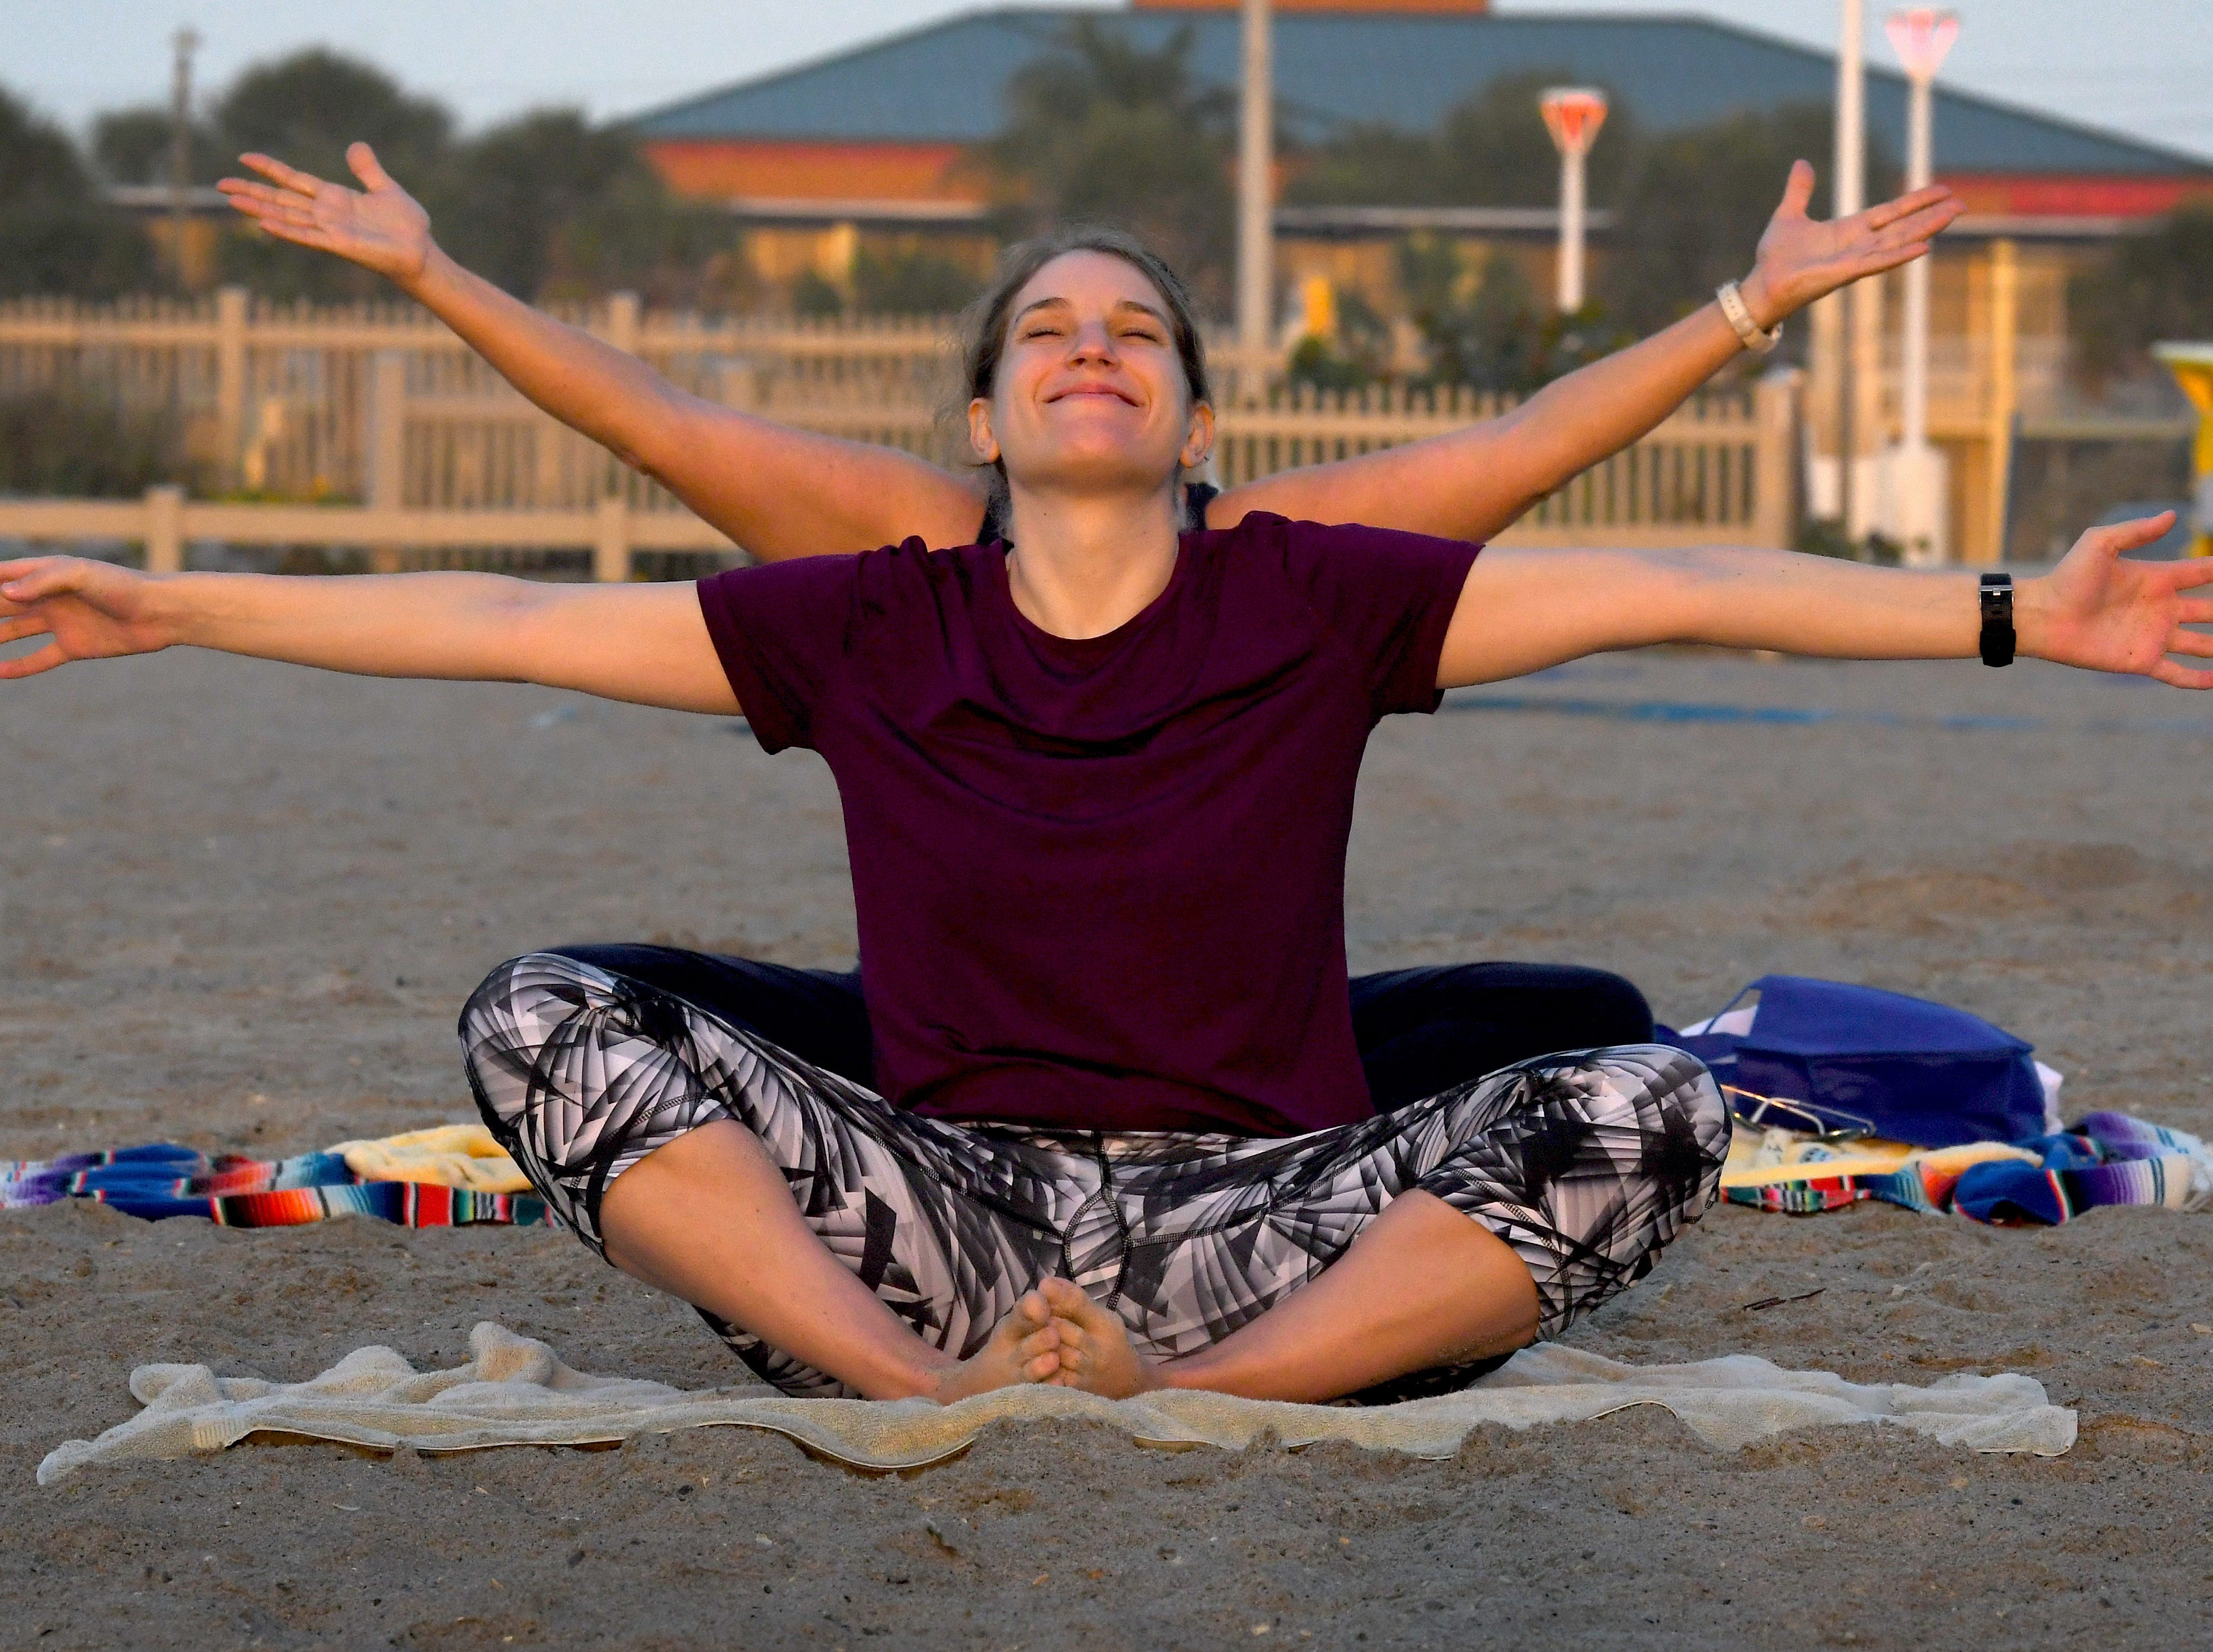 Anne Lee, and behind her is Robin Taylor. Sunrise Celebration Stretch at sunrise next to the Westgate Cocoa Beach Pier on the first day of Daylight Savings. This Yoga group, coordinated by Robin Taylor, meets at other locations as well.